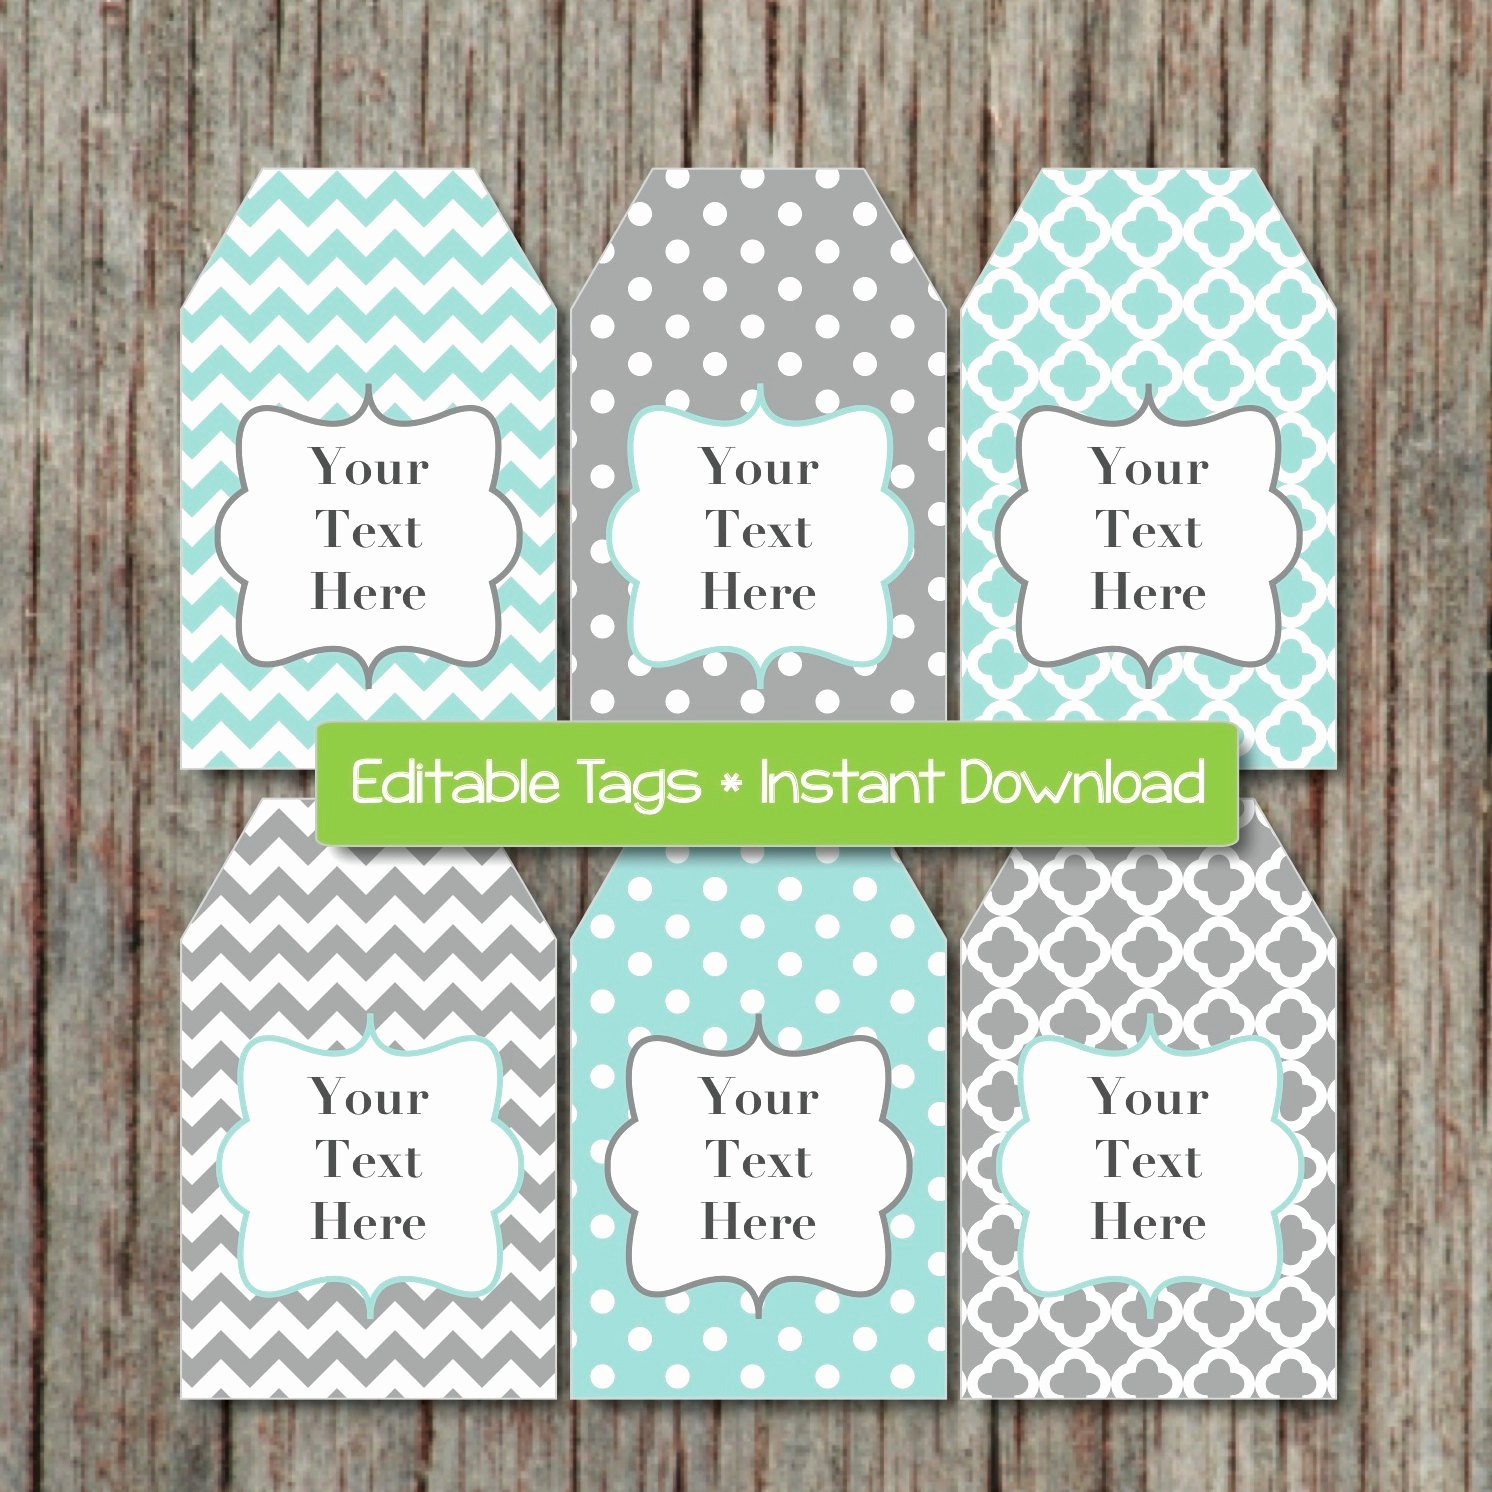 Free Editable Printable Labels Awesome Editable Gift Tags Printable Labels Digital Collage Editable